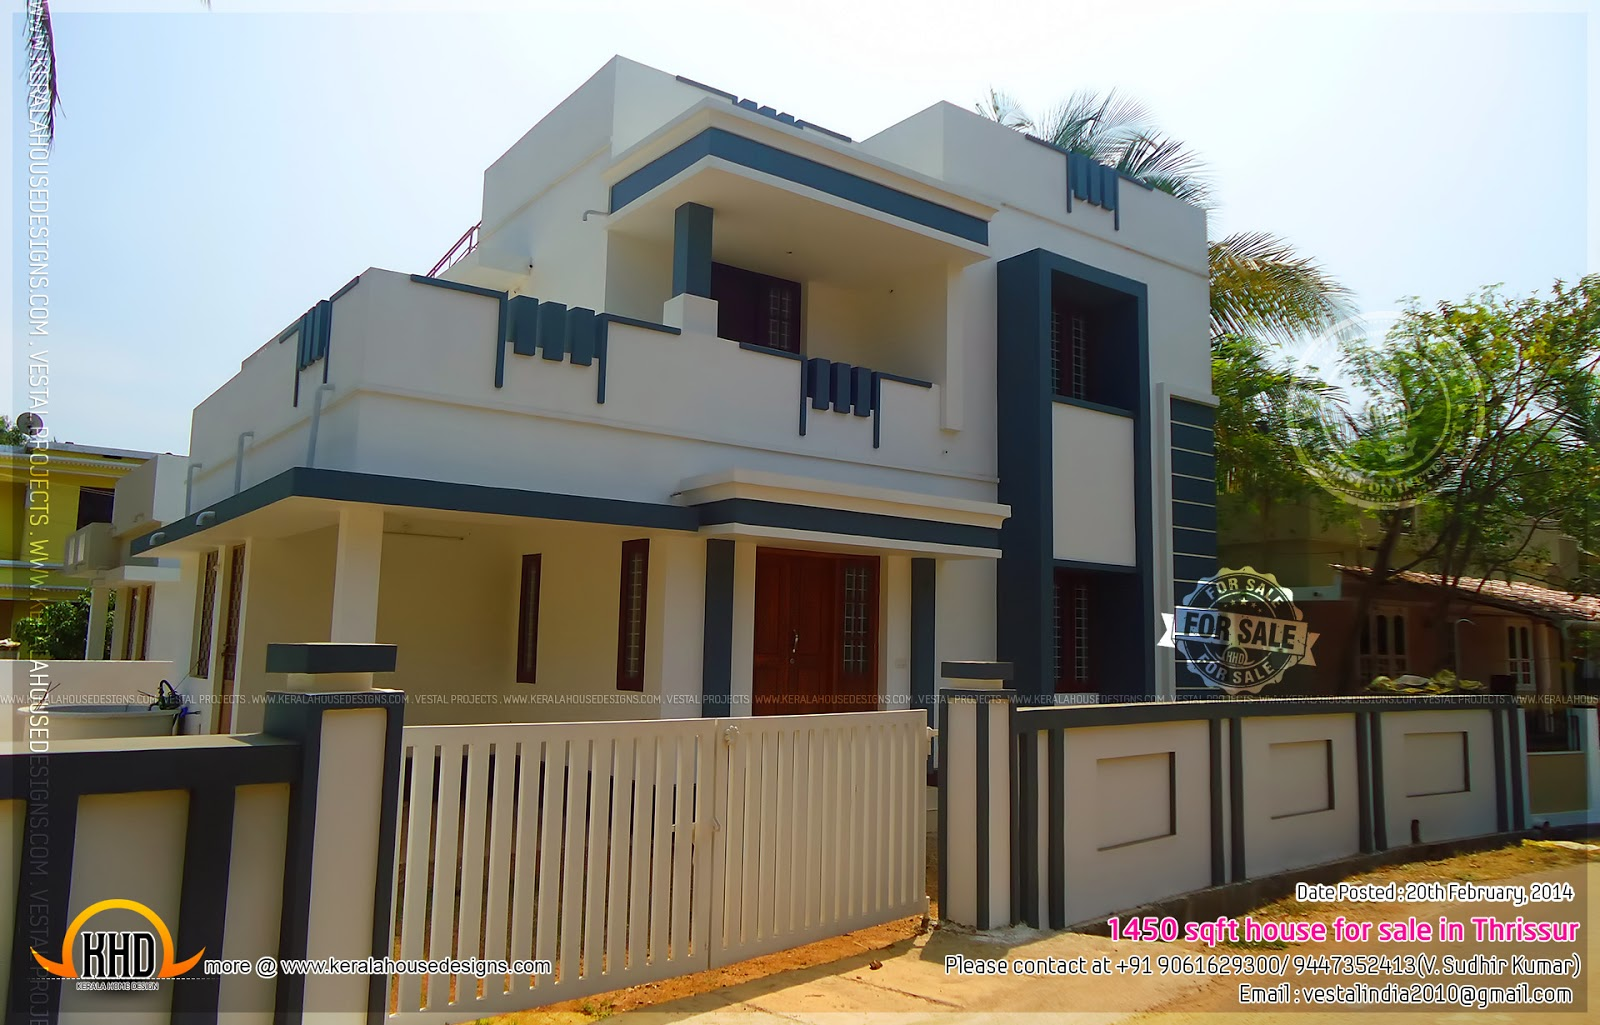 1450 sqft house for sale in thrissur kerala home design